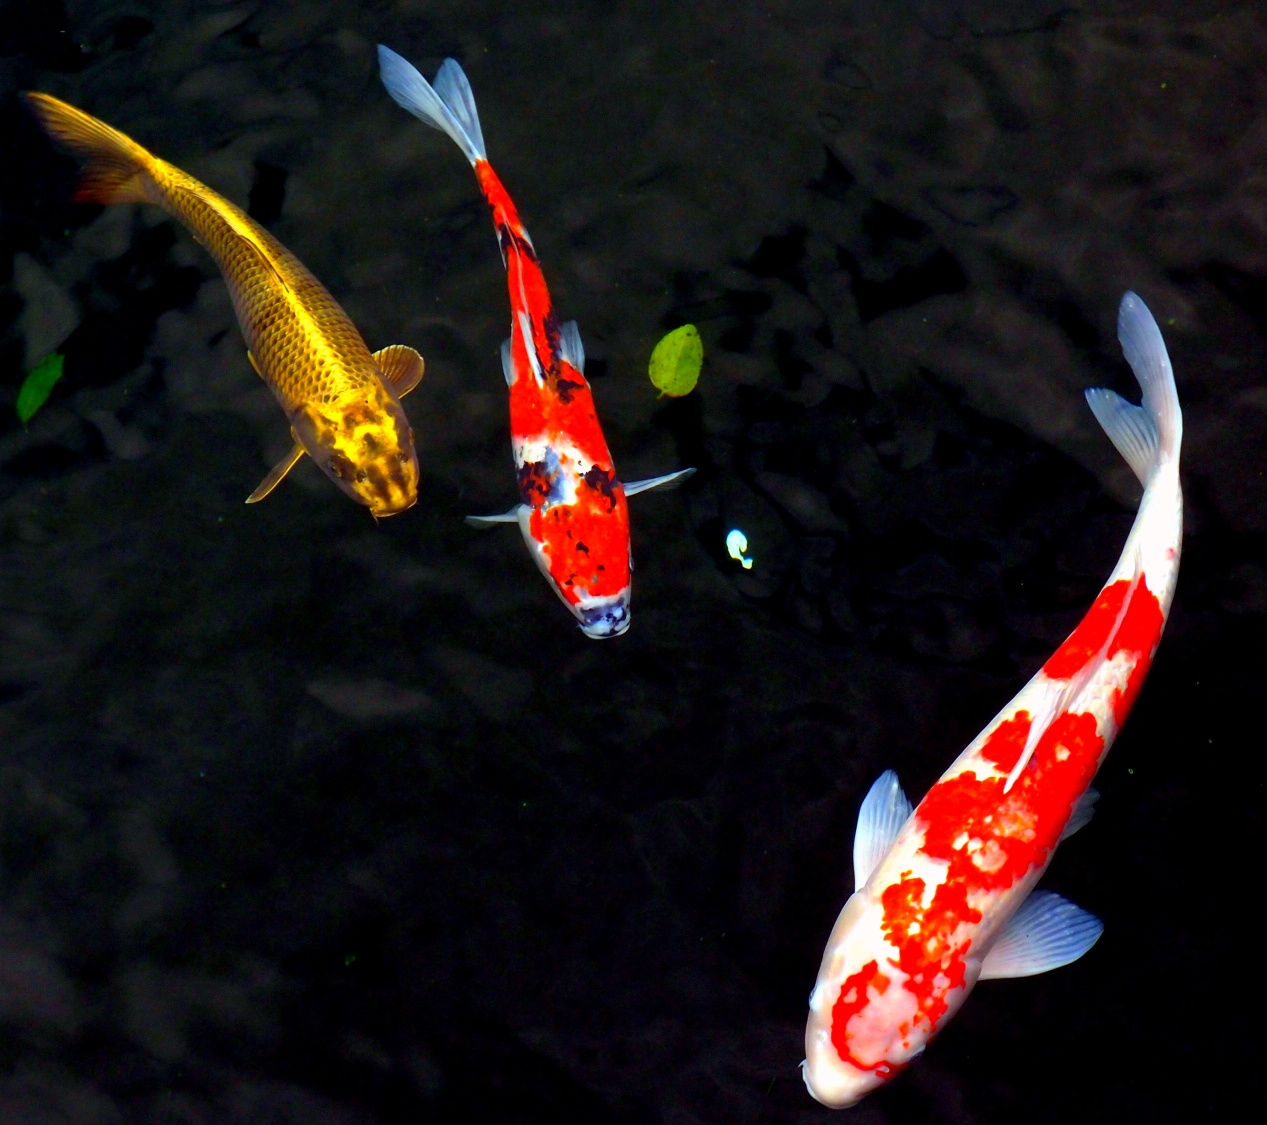 There is a very large koi pond